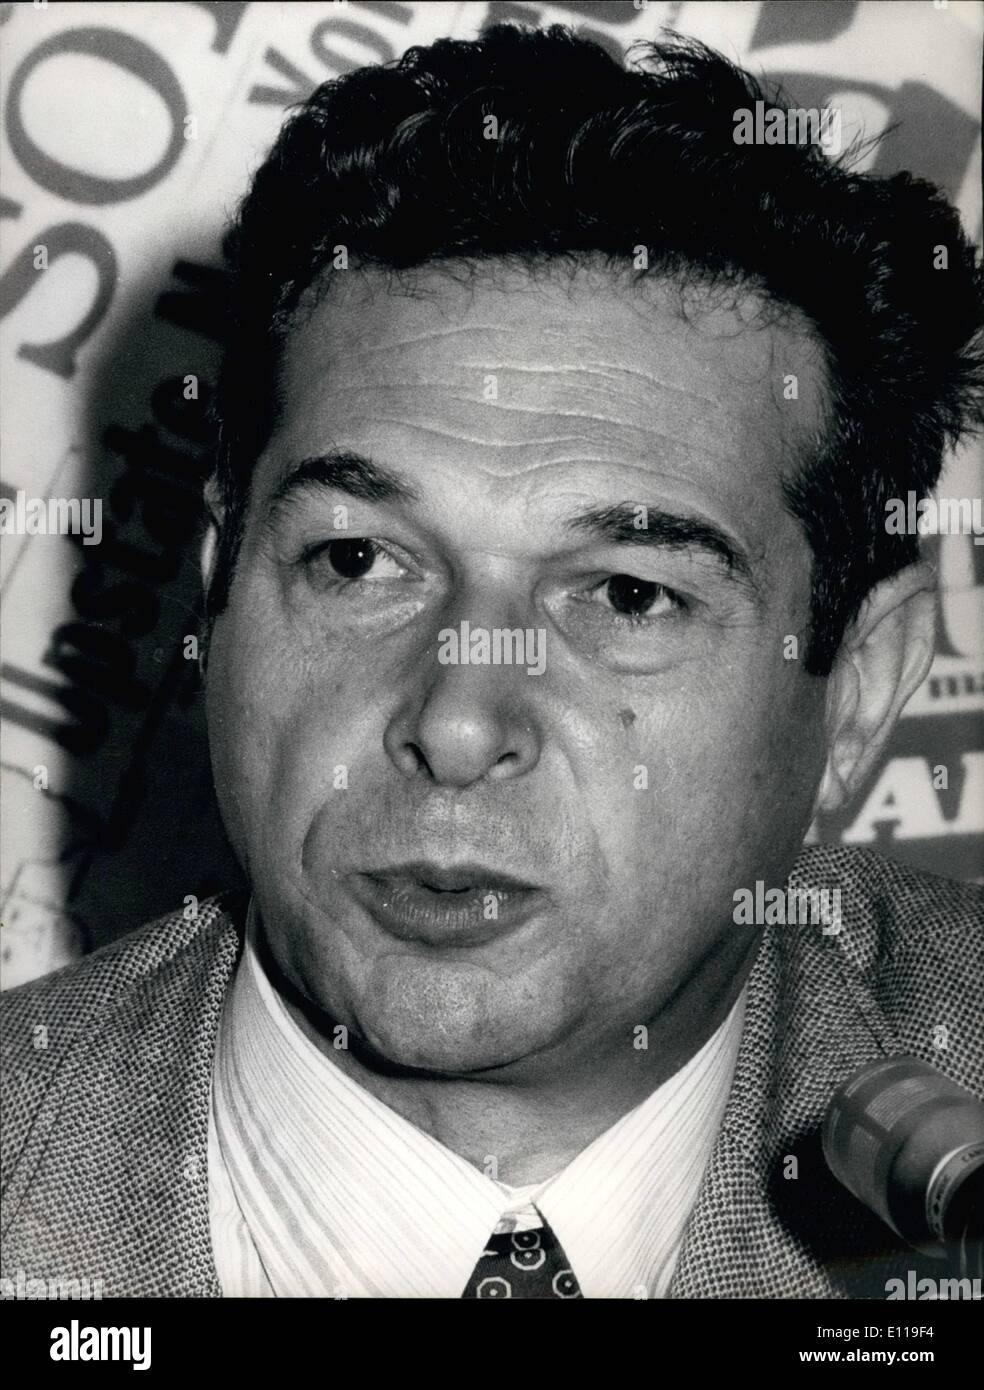 May 05, 1976 - Close up of Luciano Lama, secretary of the cgil, the greatest Italian Trade Union, seen during his press conference held at the Foreign Press association in Rome. - Stock Image